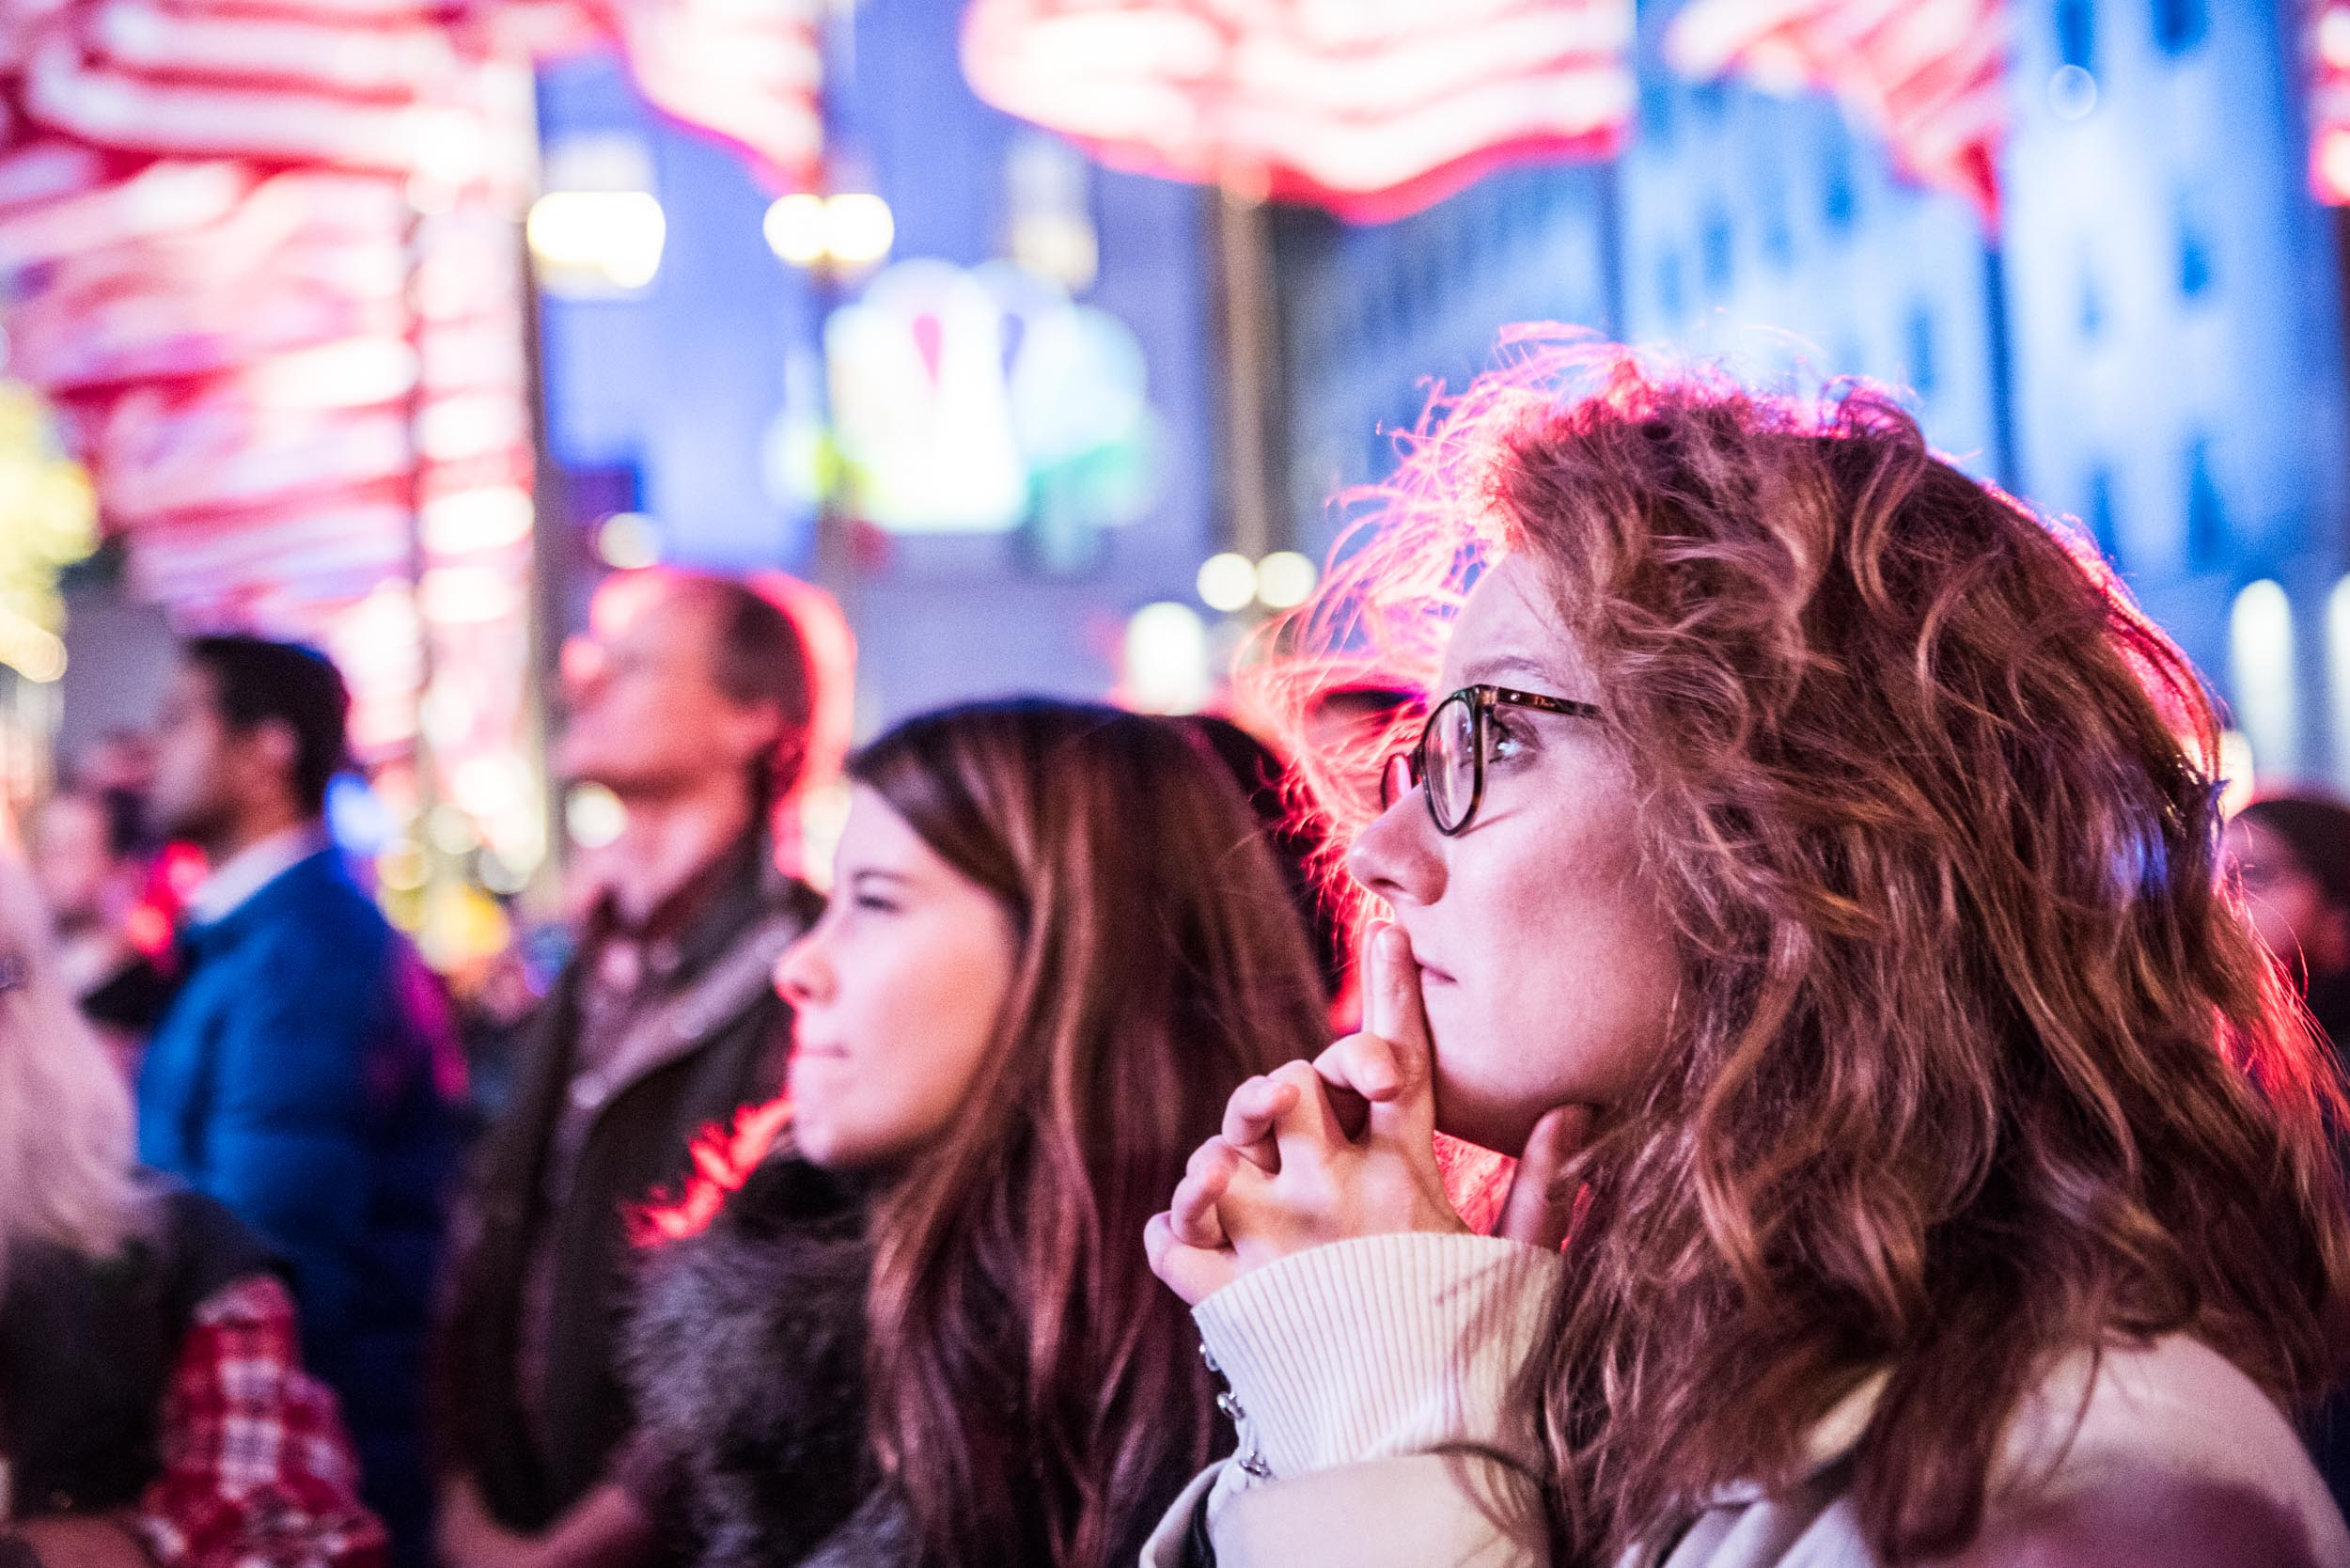 Trump election night - Festivals and protests - Photo credit Nicola Bailey.jpg